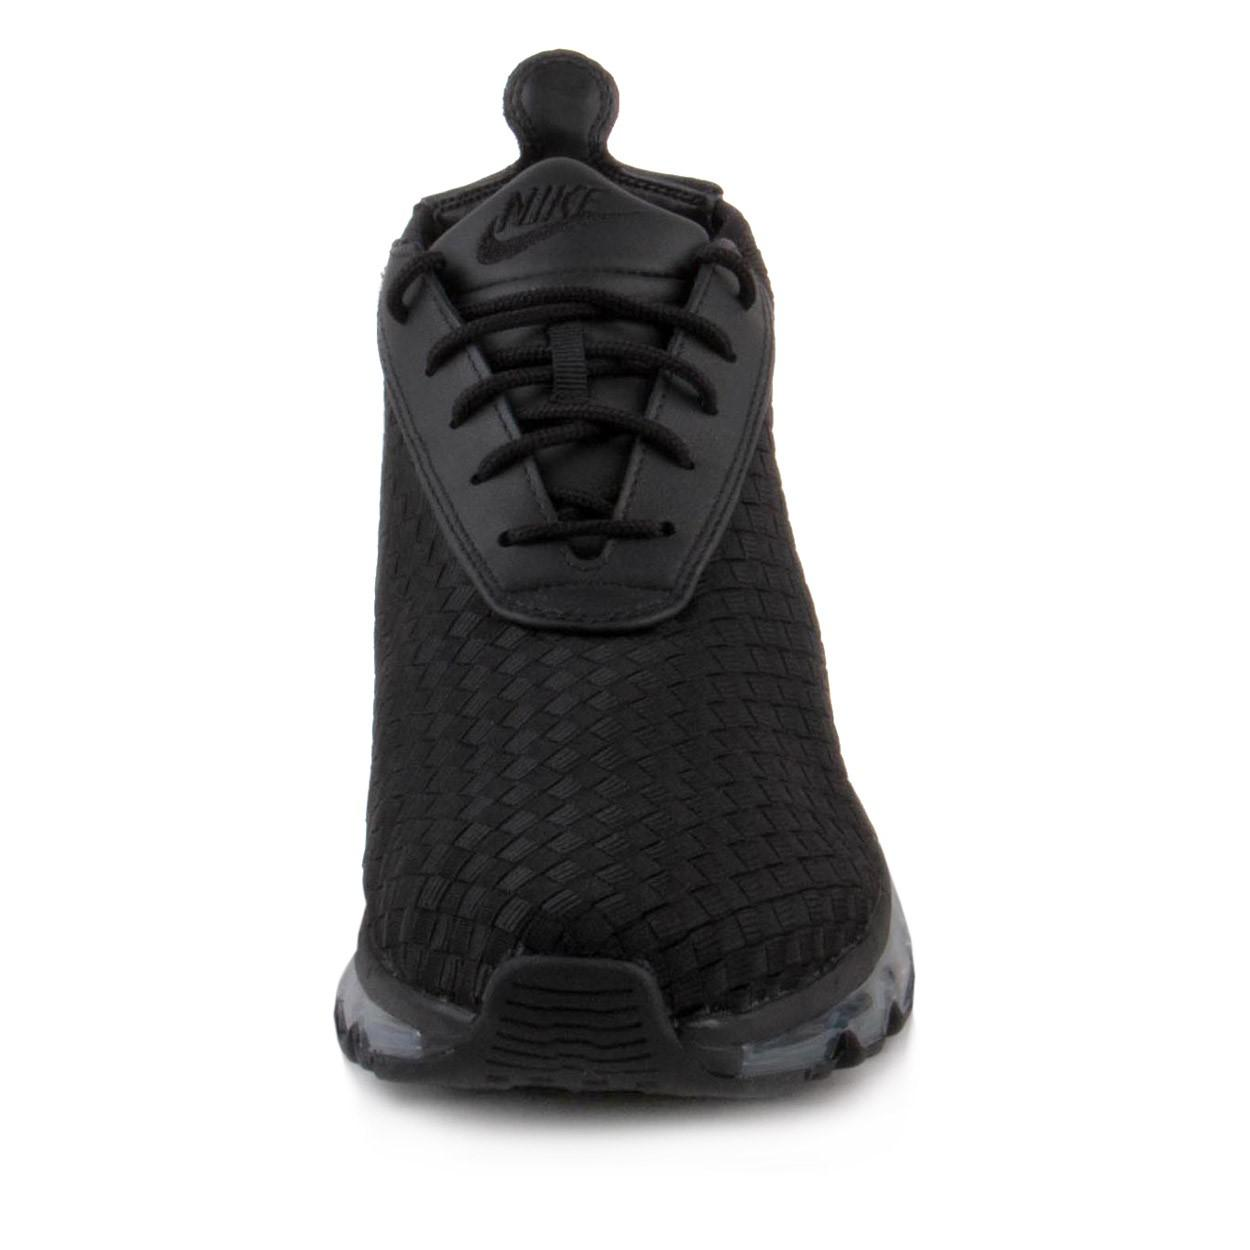 655512195e7 Lyst - Nike Mens Air Max Woven Boot Black 921854-002 Size 8.5 in ...